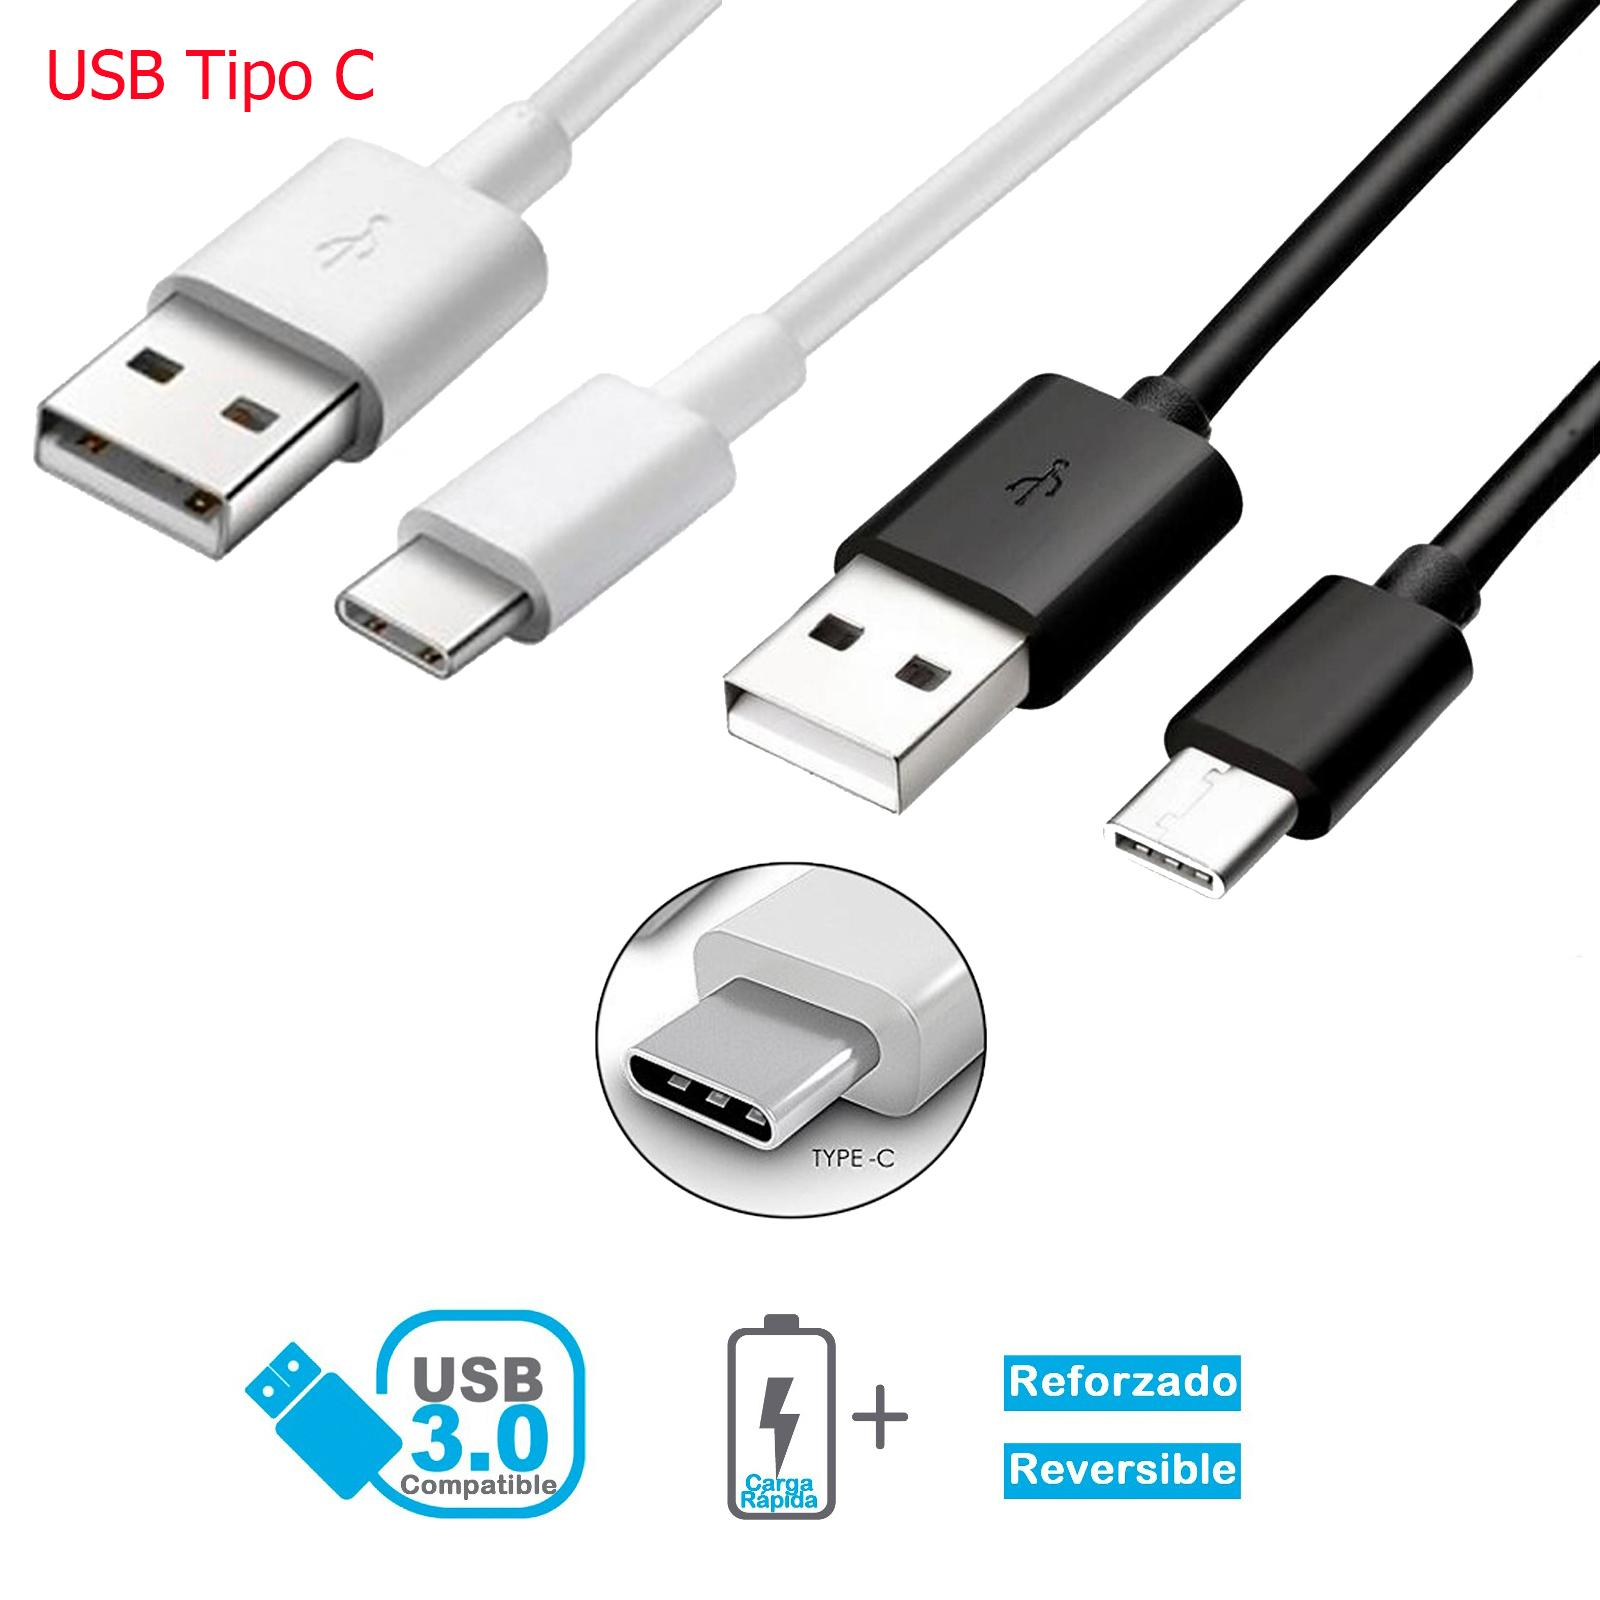 USB Type C cord for mobile Xiaomi Black Shark 3 Pro fast charge and Data 1 poke length and 2 meters